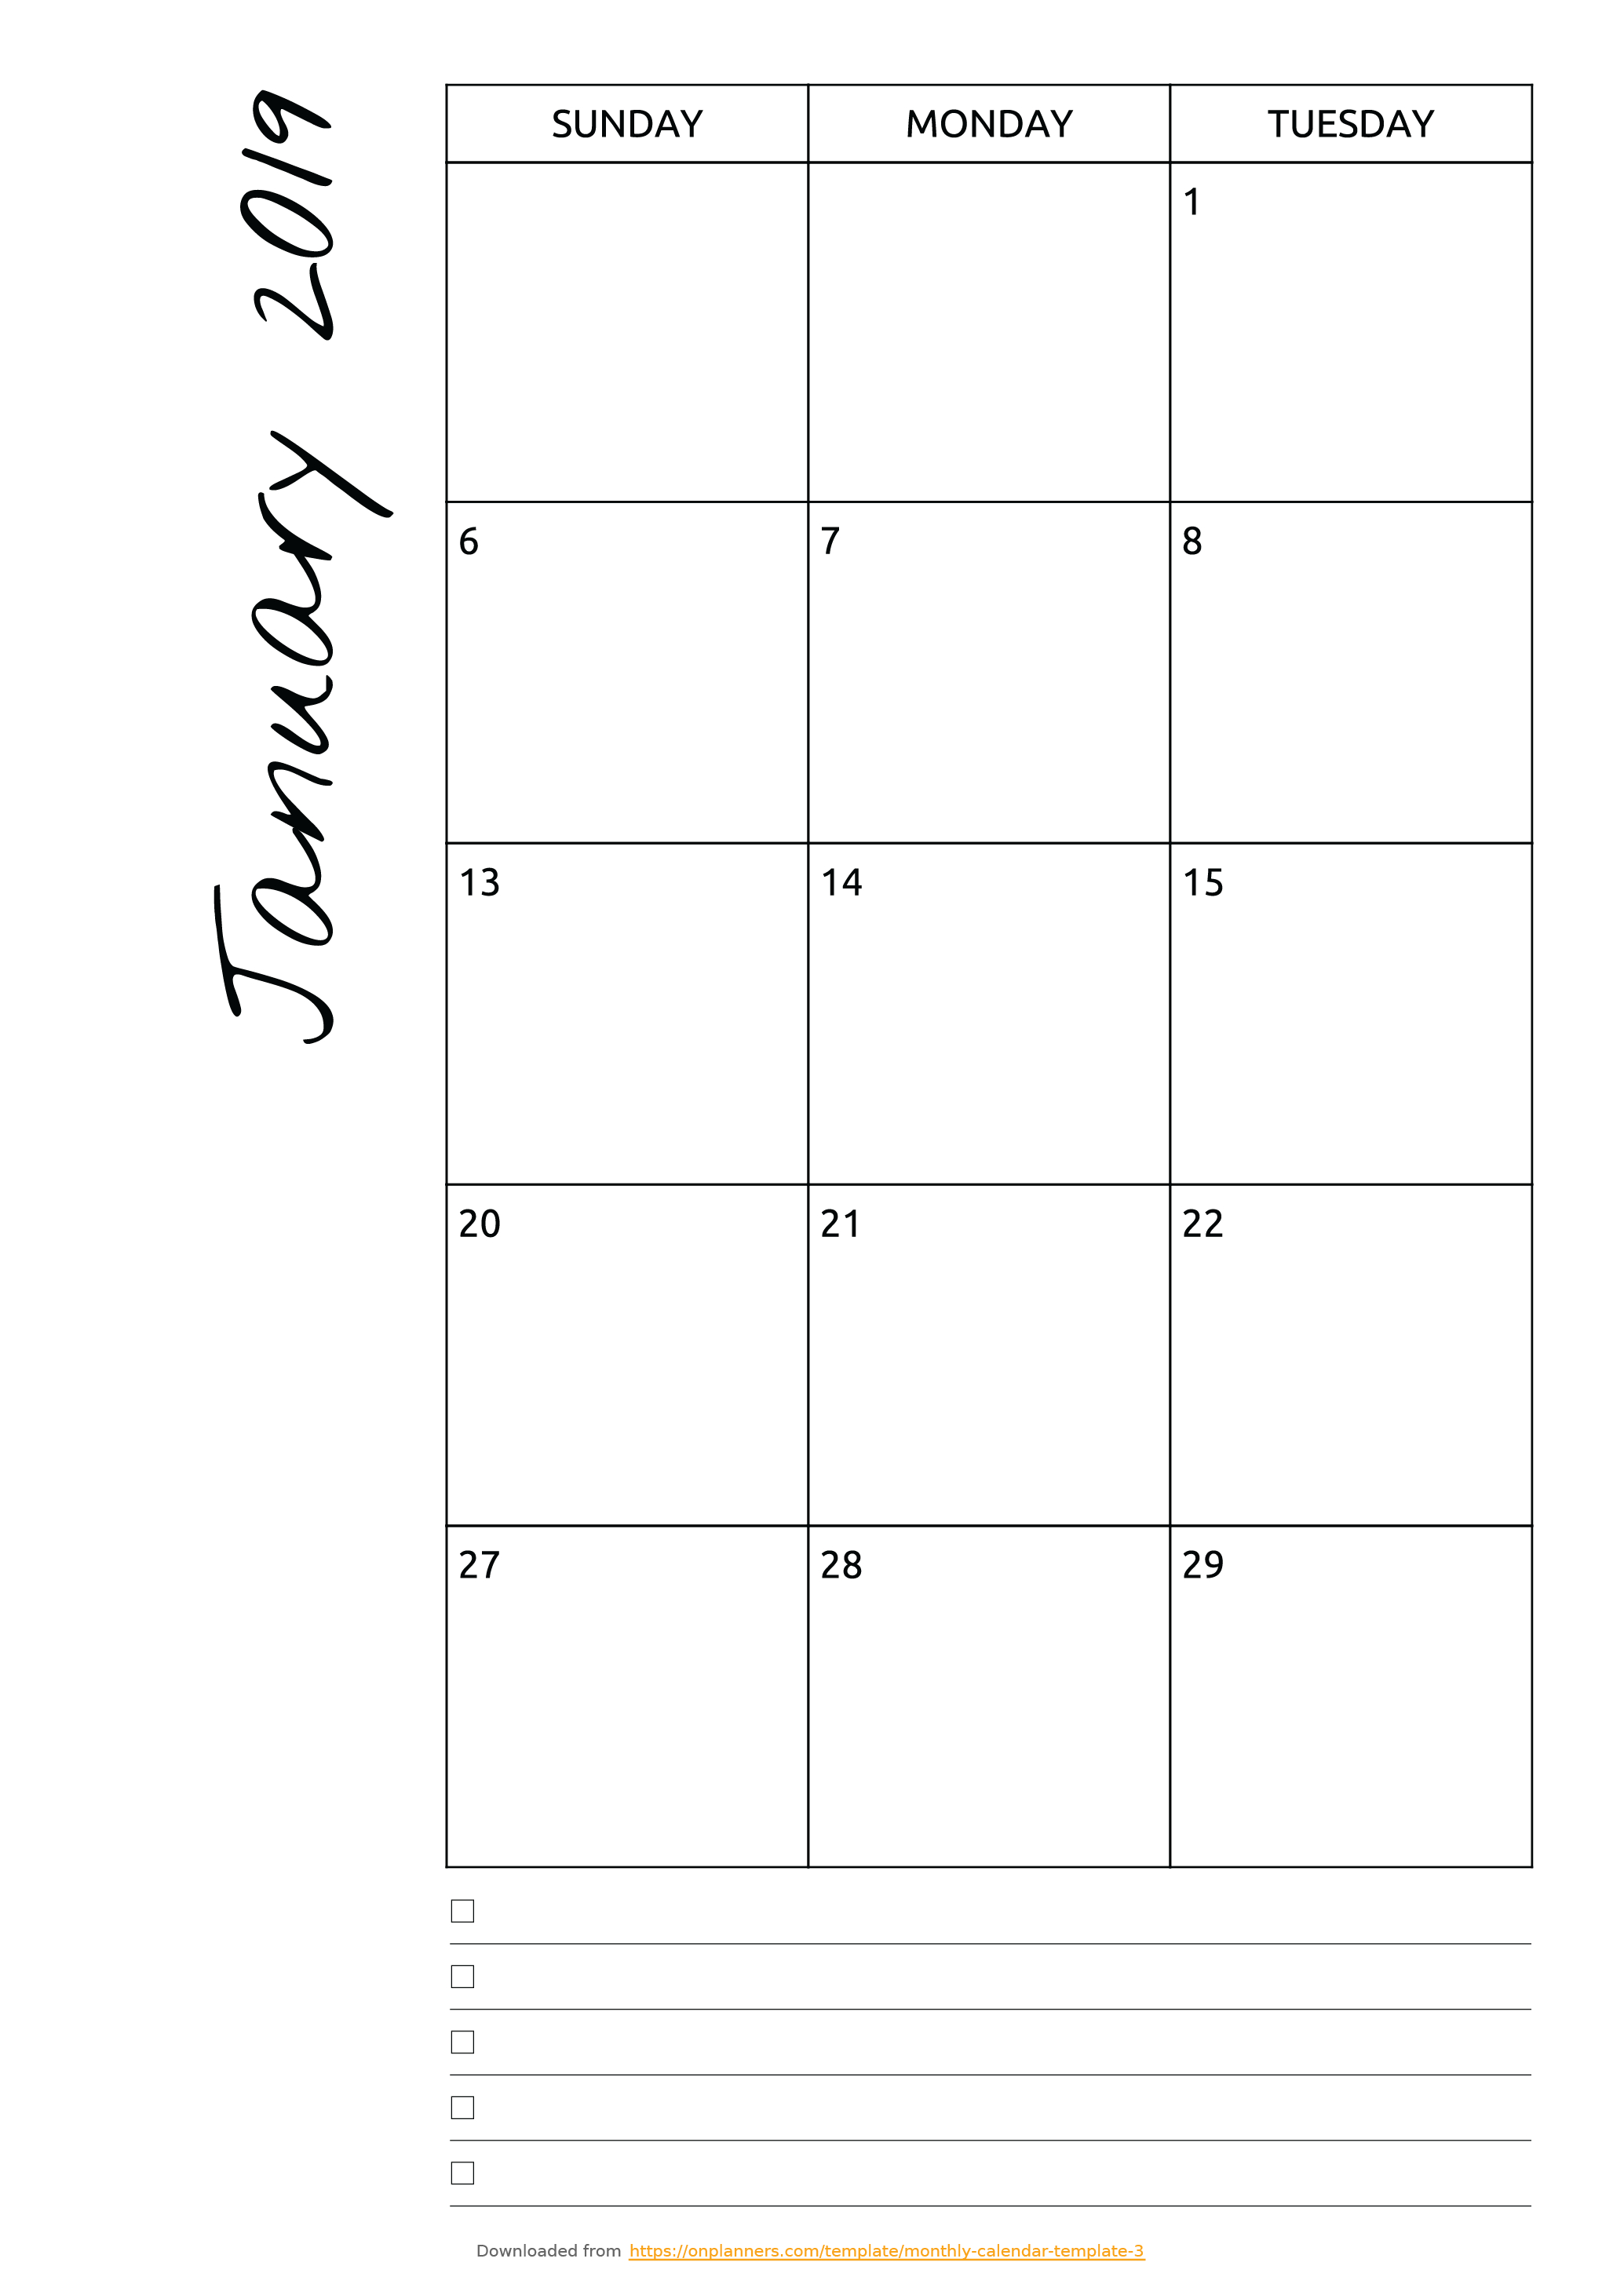 Free Printable Monthly Calendar With Notes Pdf Download with regard to Printable Monthly Calendar Templates